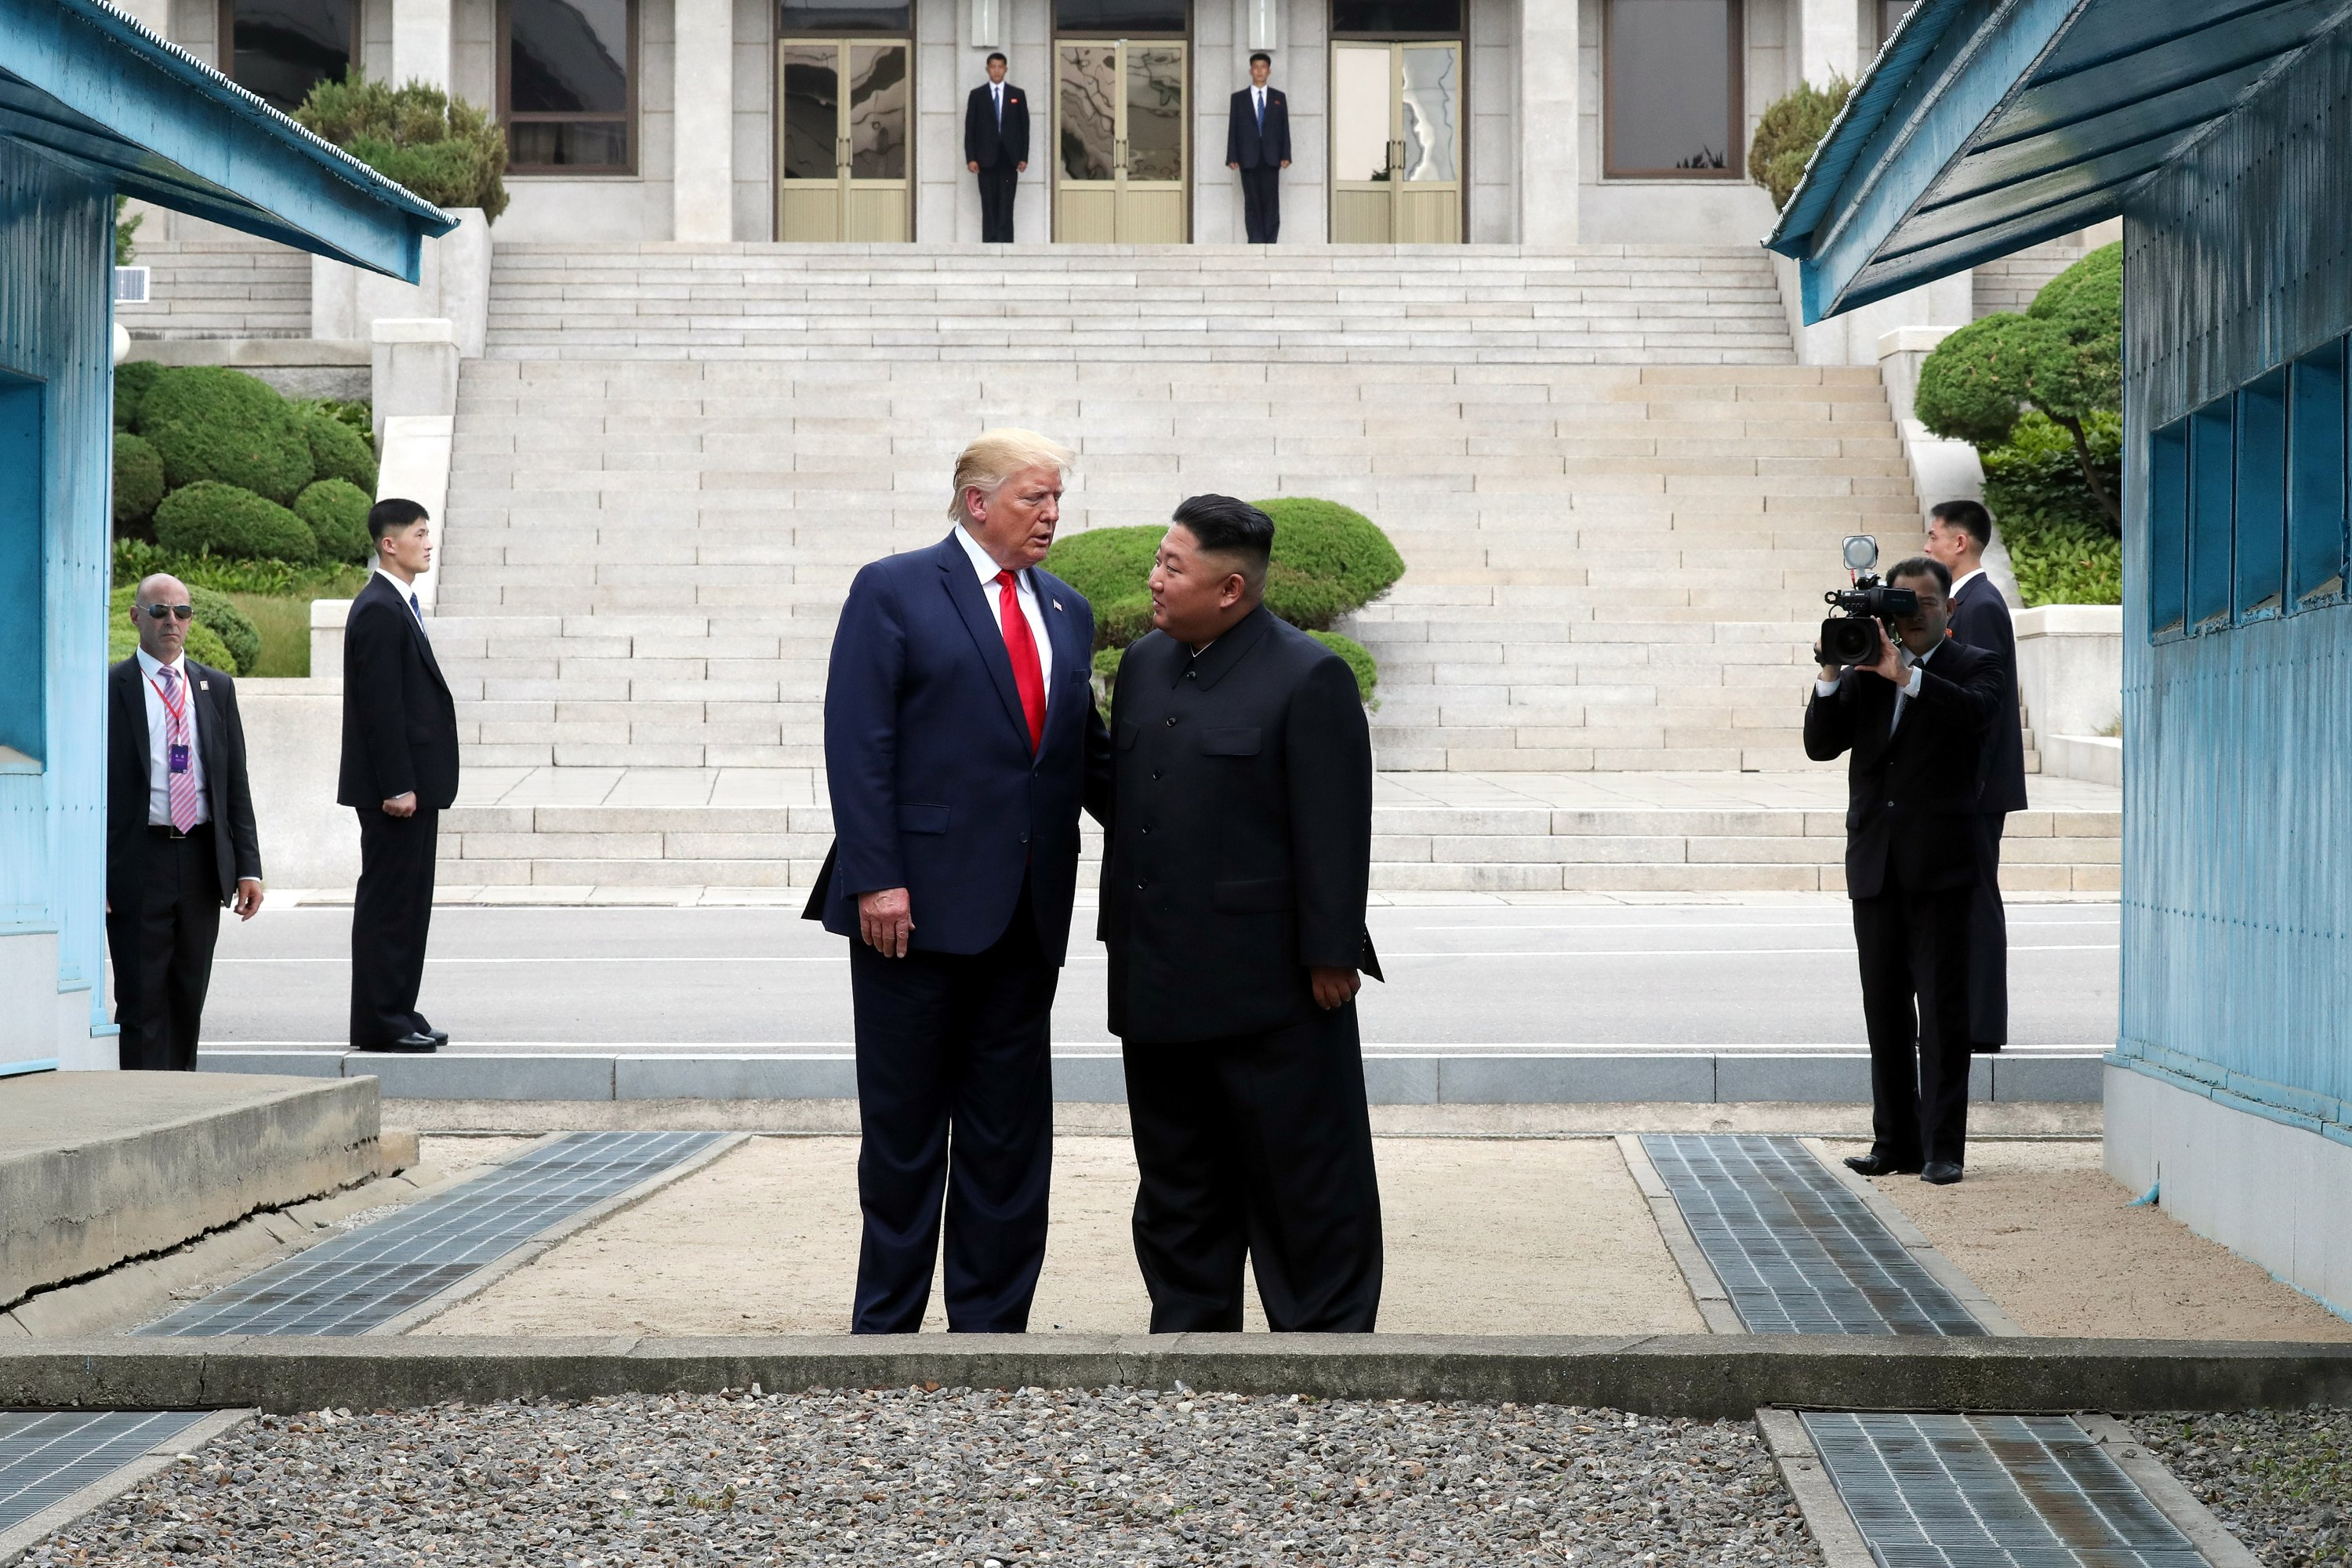 U.S. President Donald Trump and North Korean leader Kim Jong Un stand inside the demilitarized zone (DMZ) separating North and South Korea, in Panmunjom, South Korea, June 30, 2019. (Photo by Getty Images)